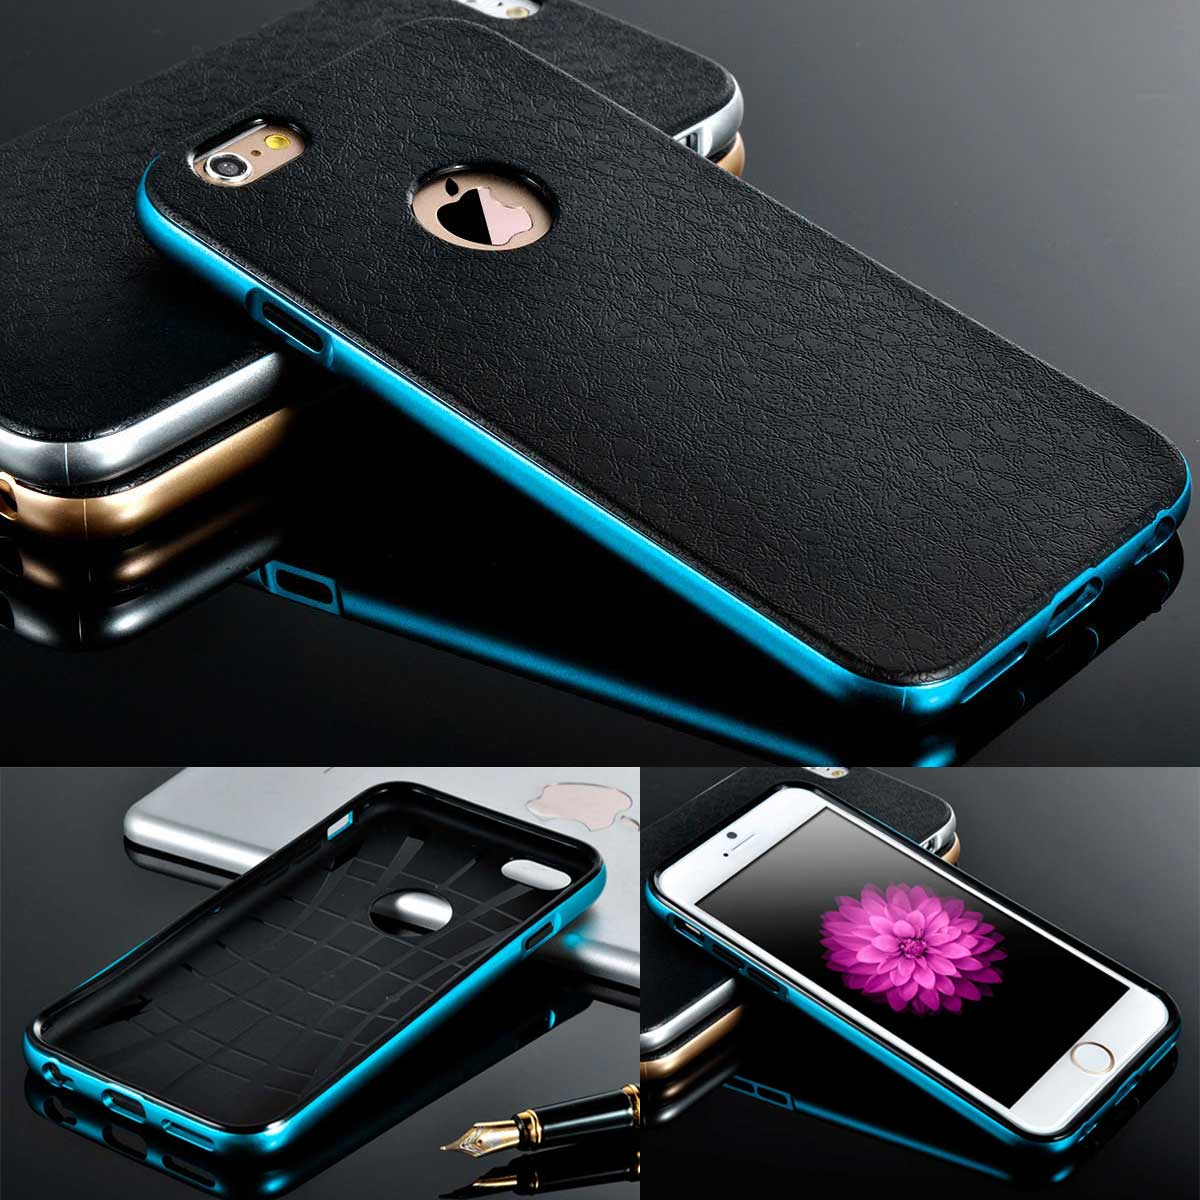 NEW Luxury Metal Bumper Silicone/Gel/Rubber Case Slim Cover for iPhone 5s 6 Plus